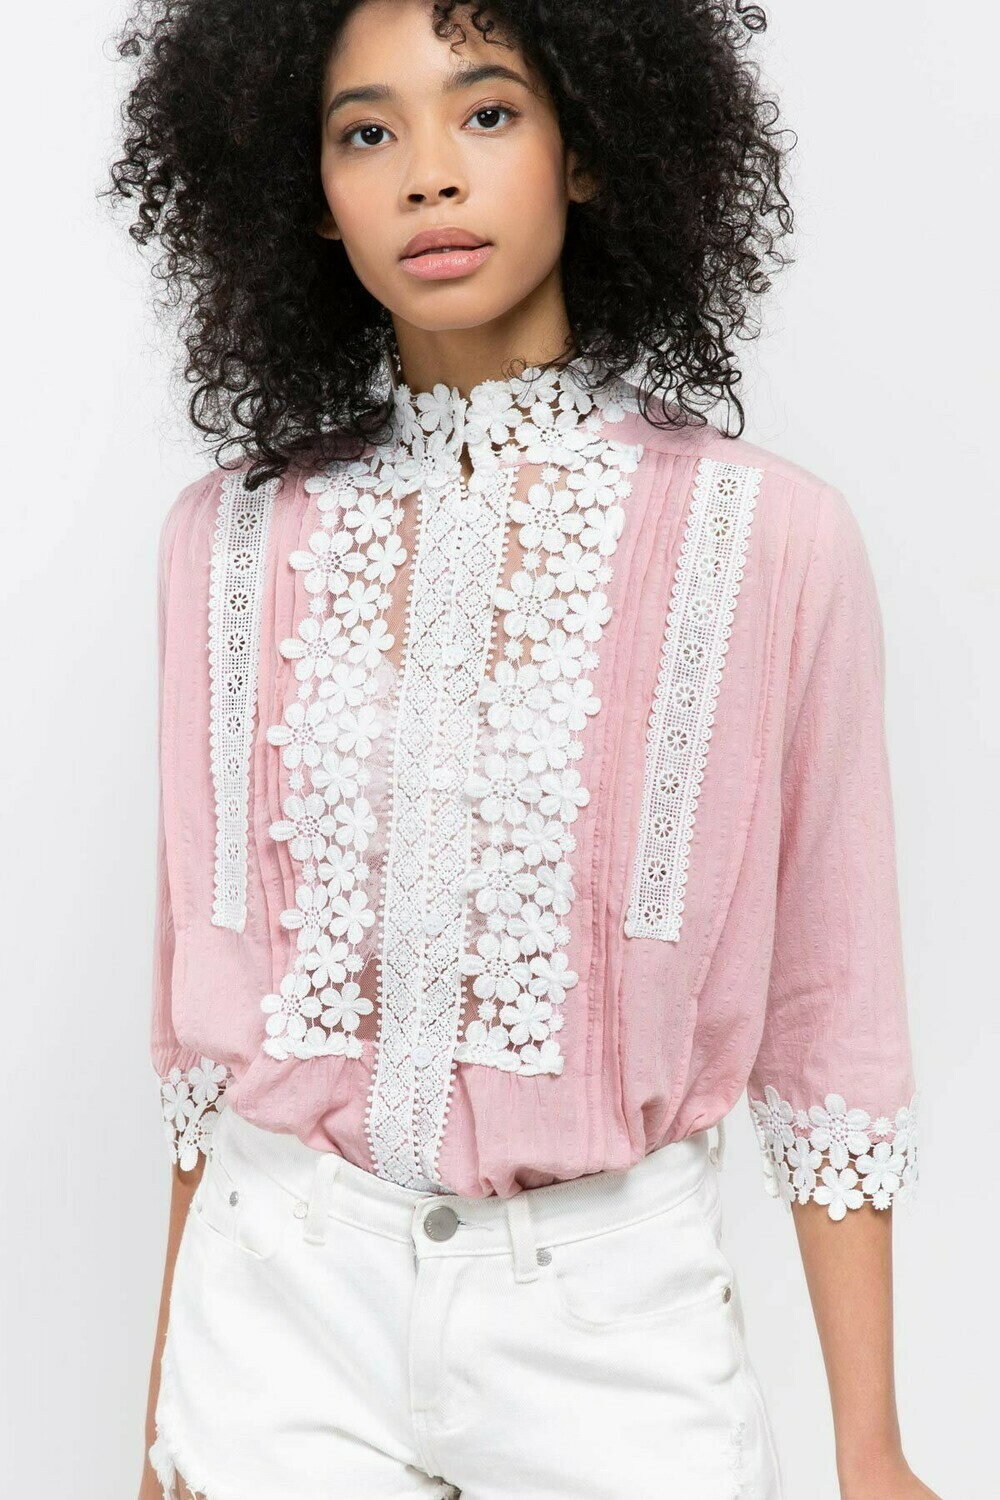 Eyelet Trim Pink & White Top